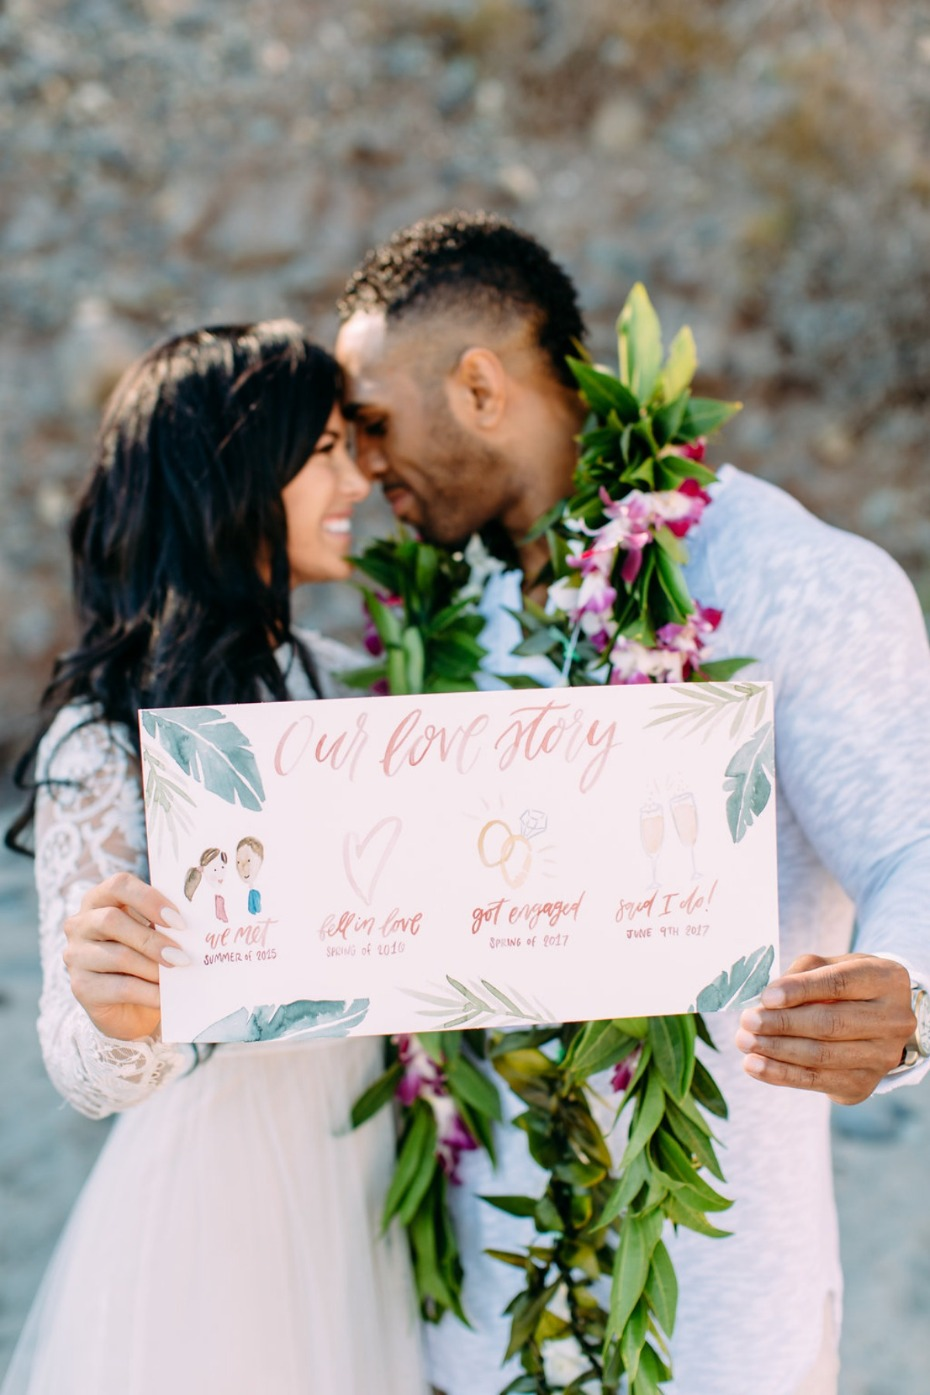 5 Tips On Getting Your Save The Dates Right The First Time